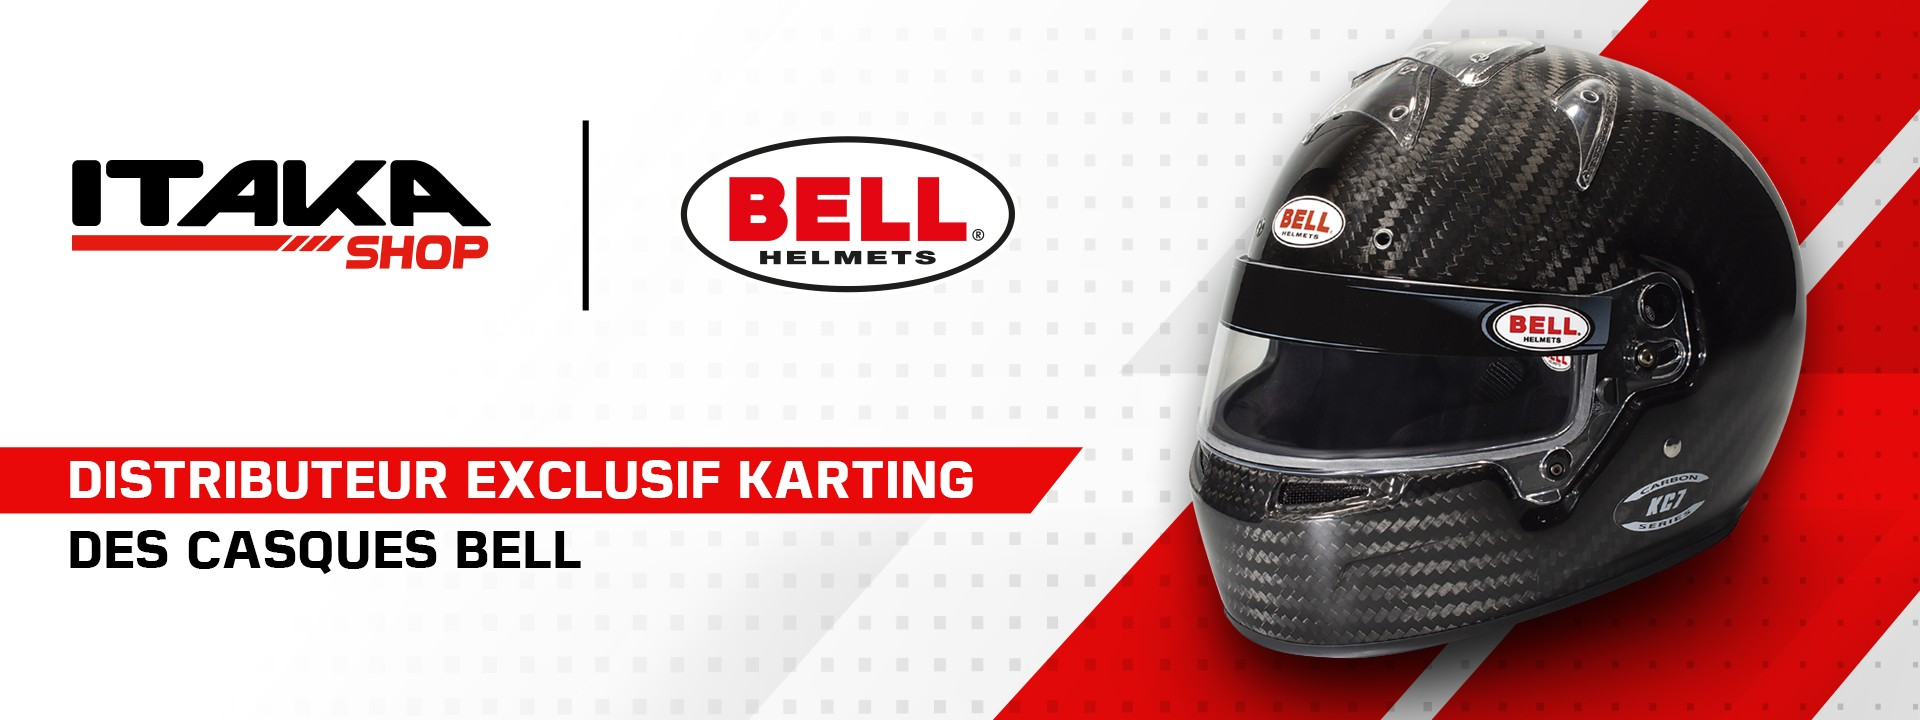 Distributeur Exclusif Karting casques BELL